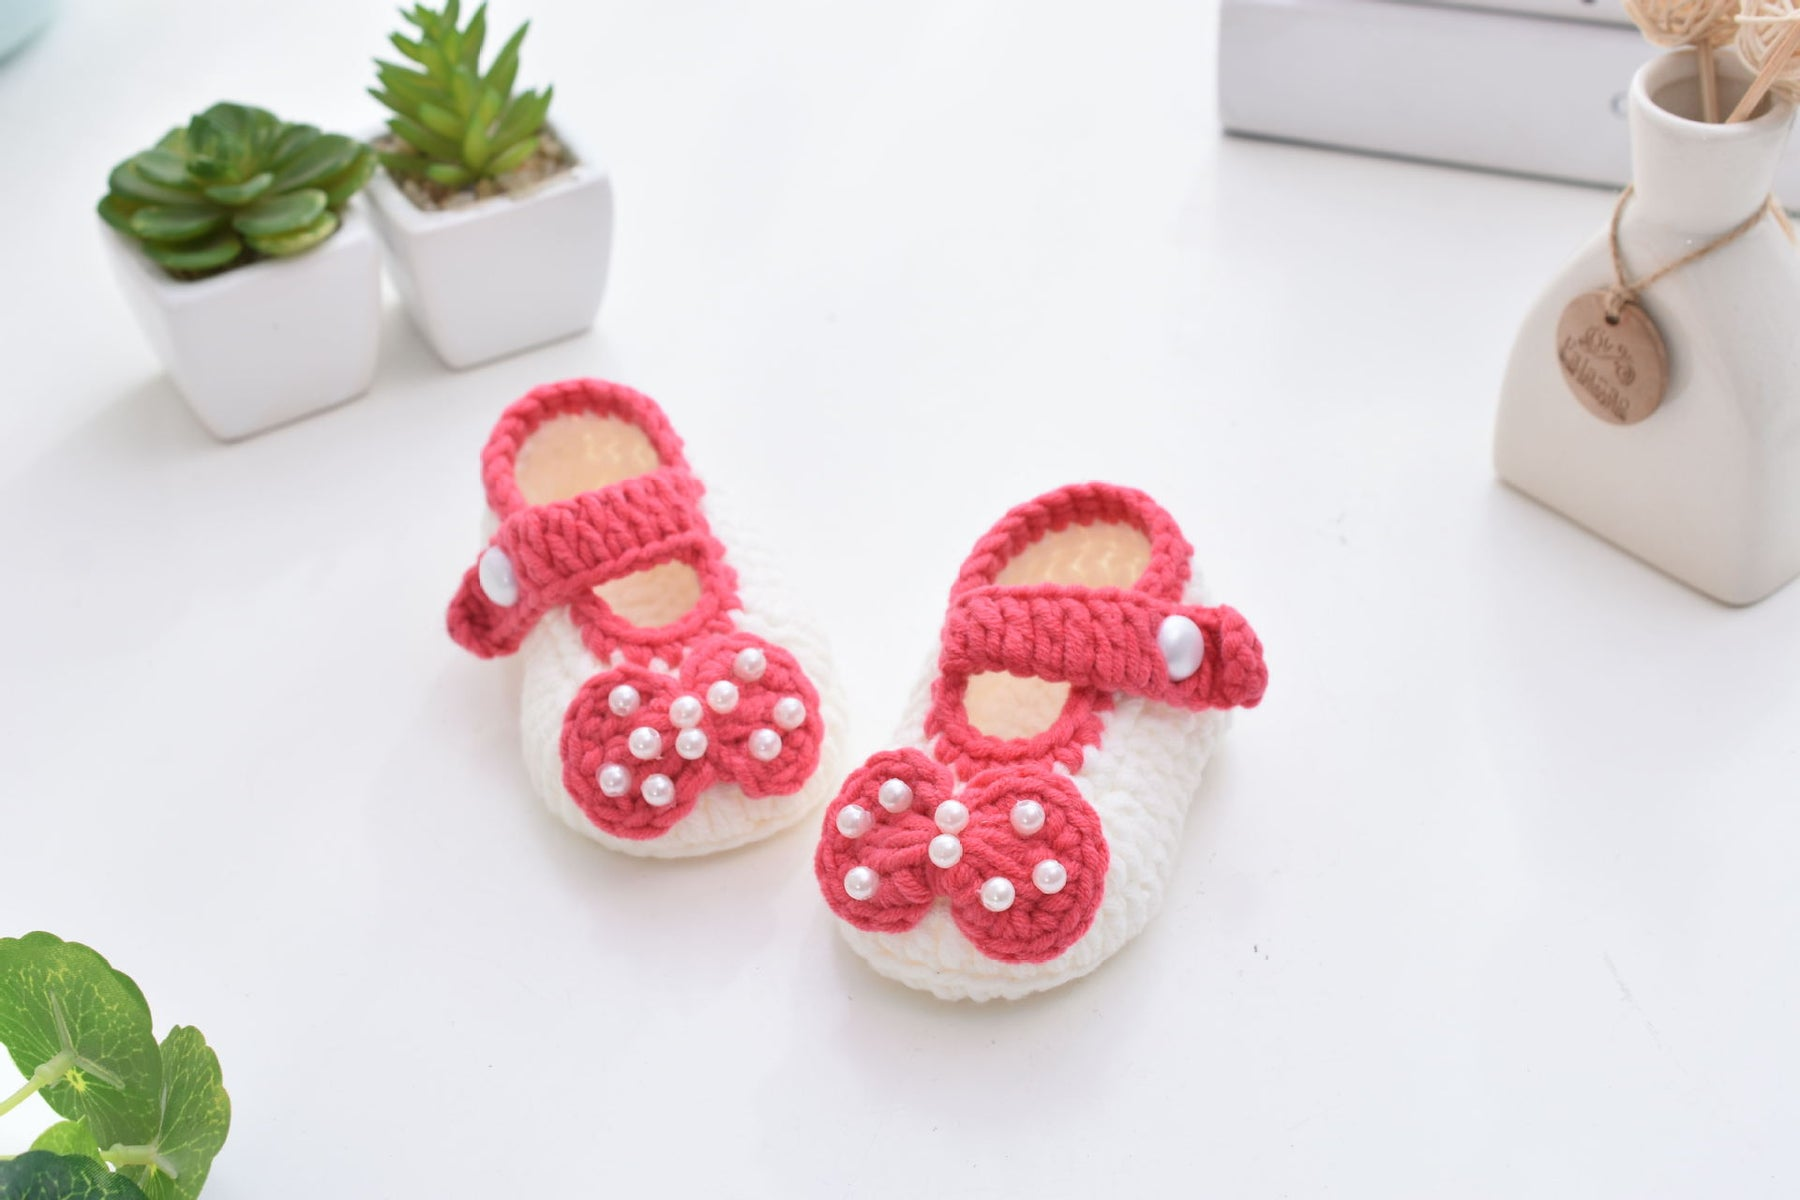 Crochet Knit Baby Infant Happy Girl Pearl Handmade Moccasins - Orange